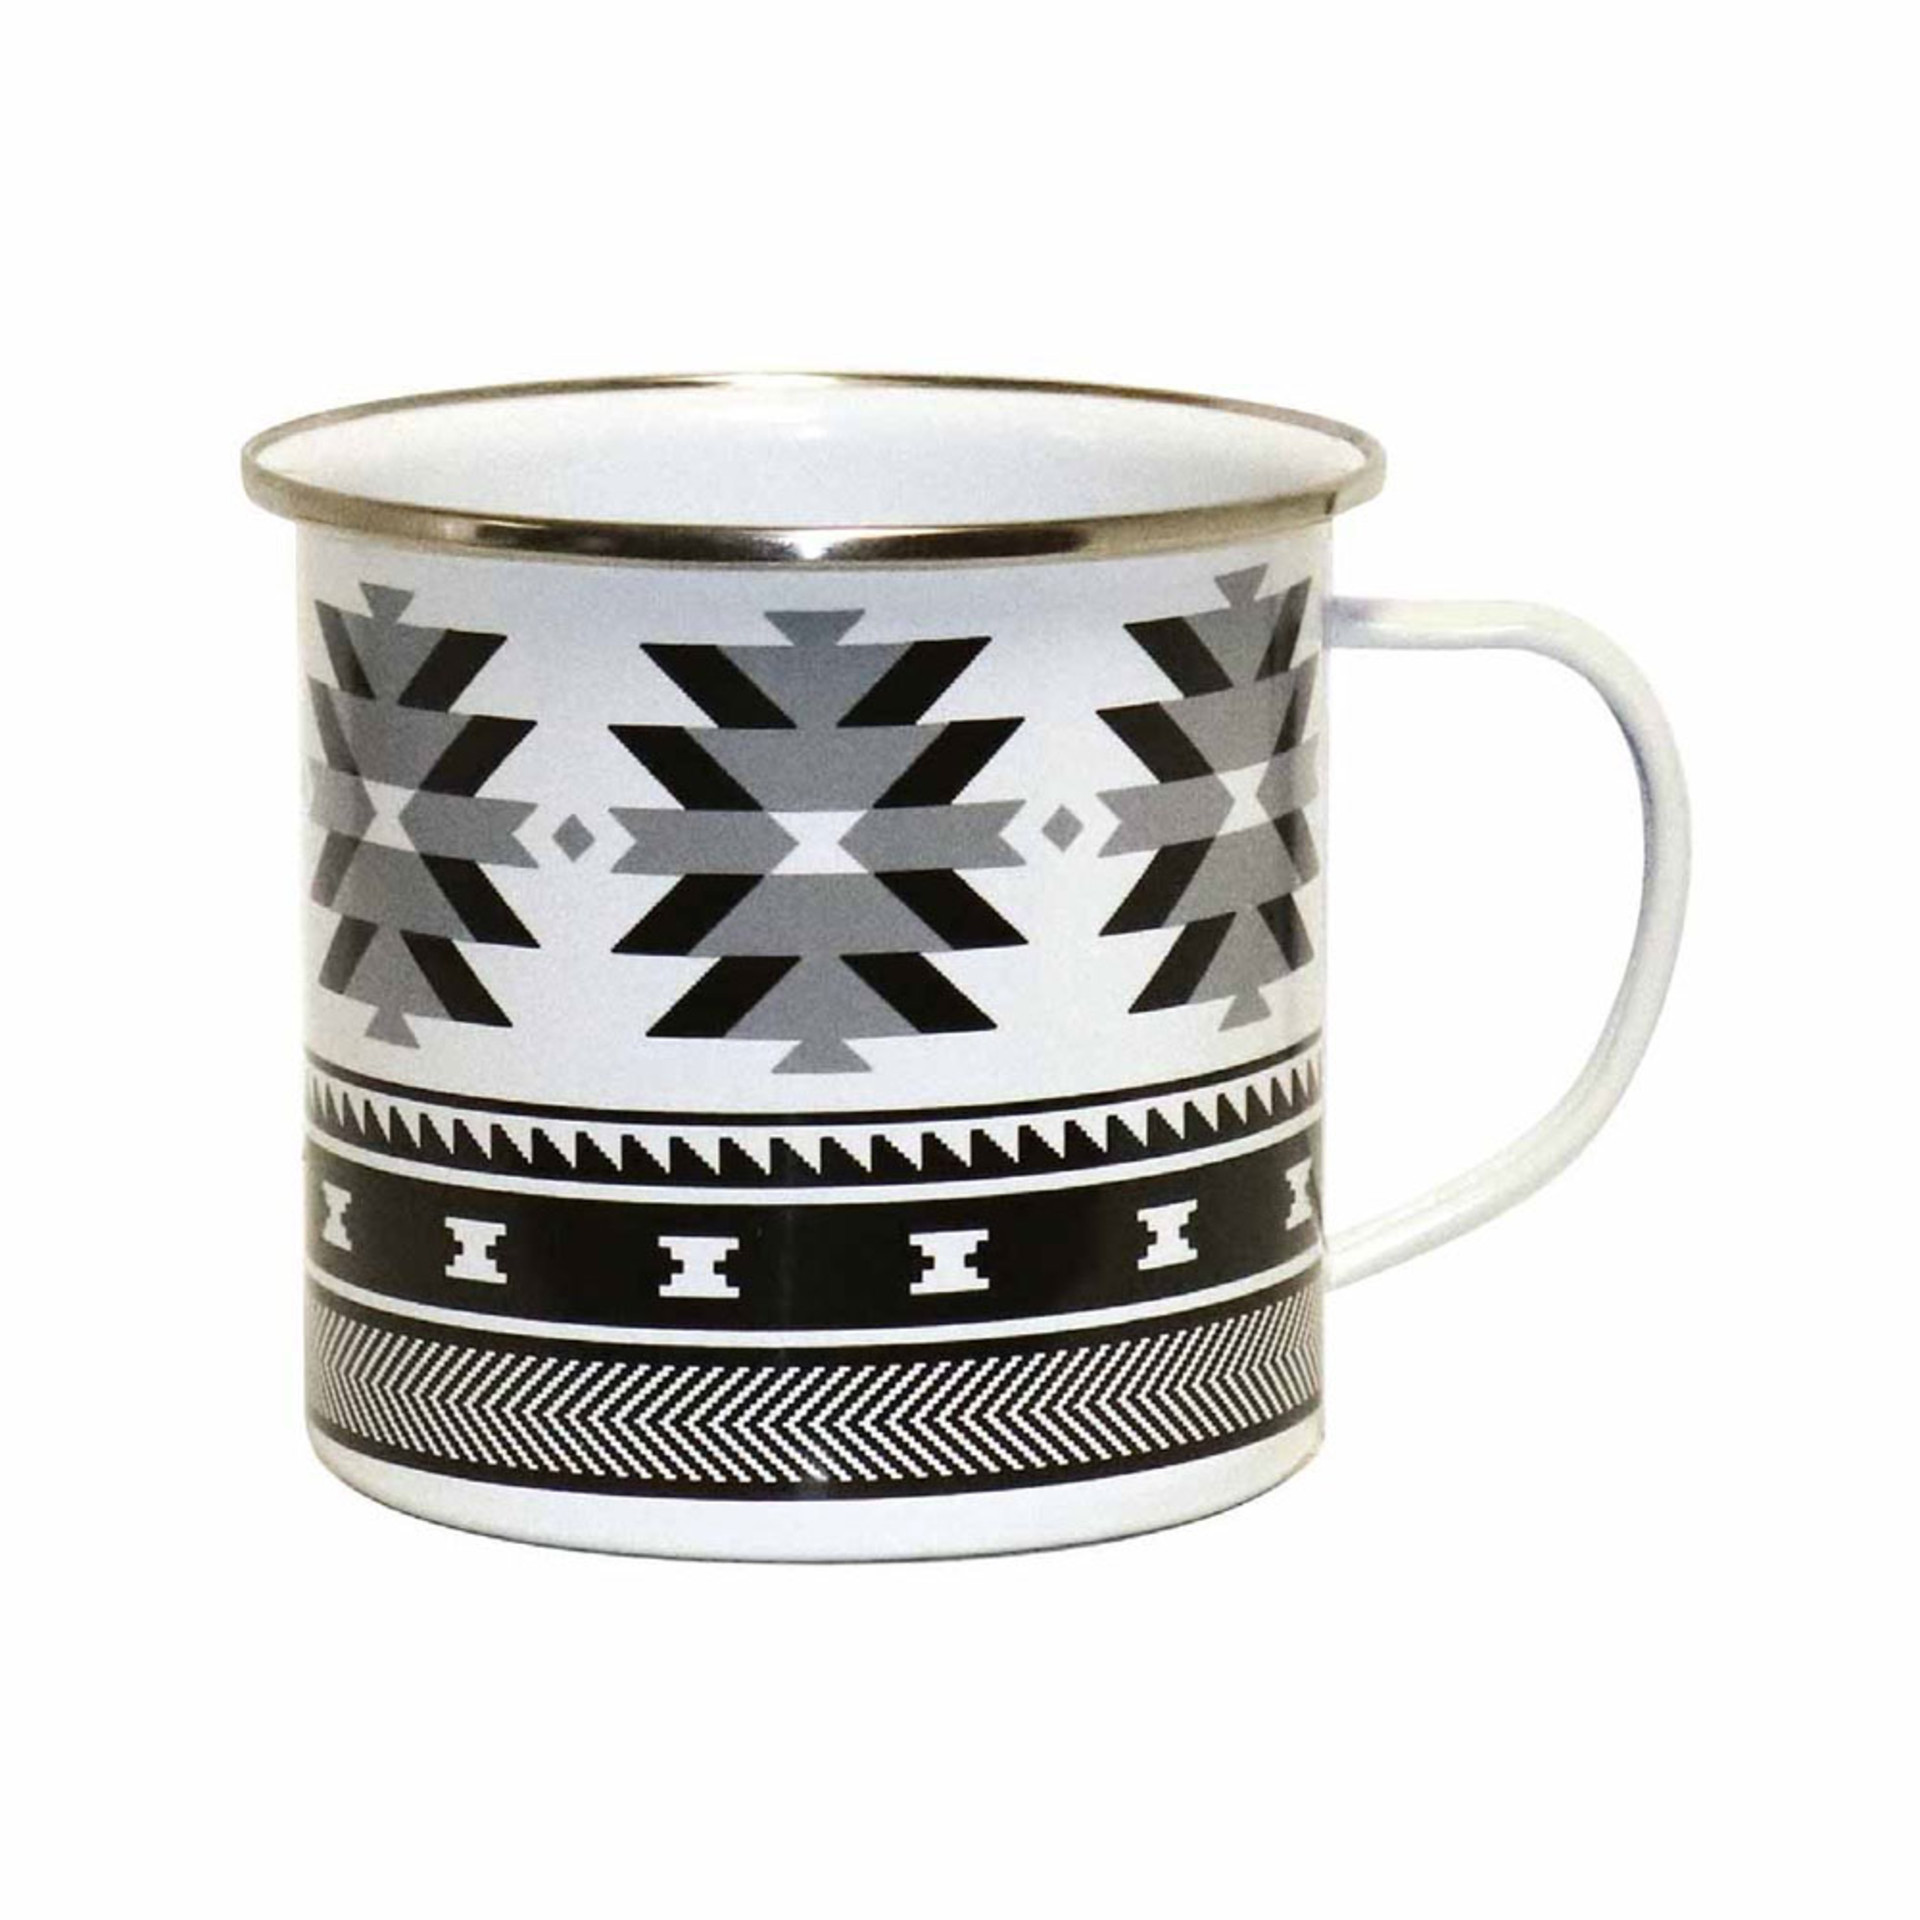 Native Northwest Salish Weaving Enamel Mug by Leila Stogan